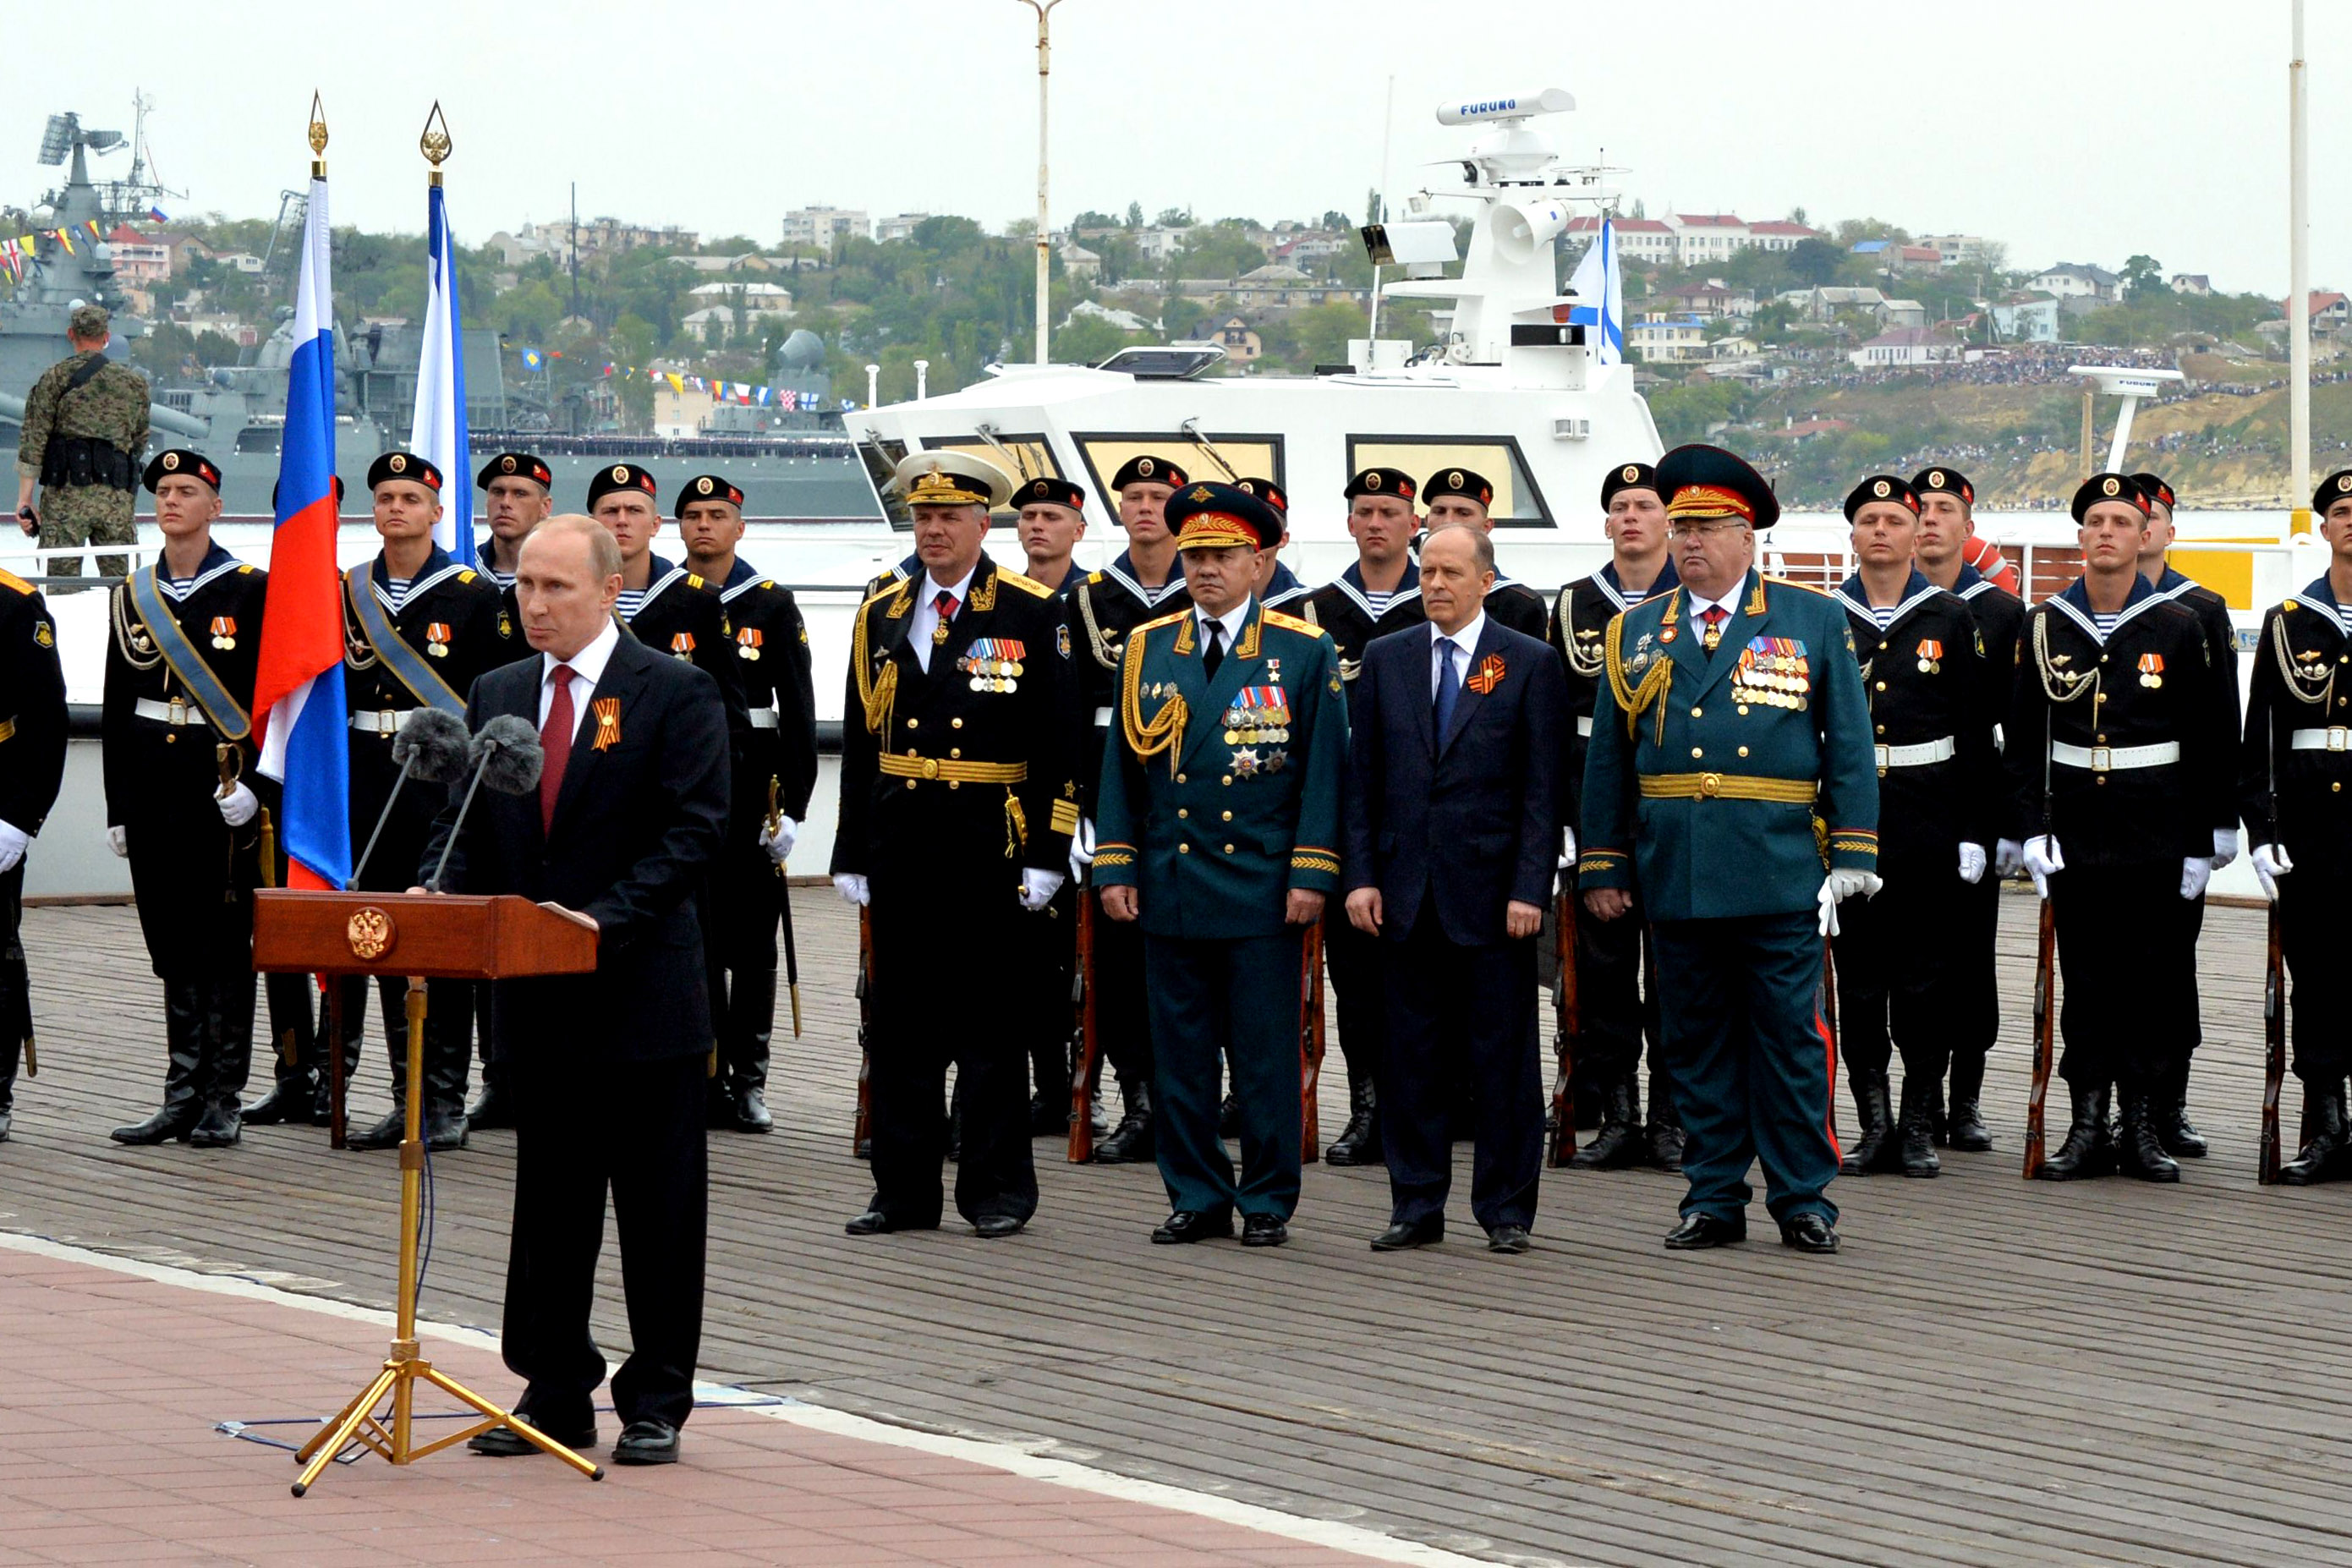 Putin speaks during his visit to the Crimean port of Sevastopol.